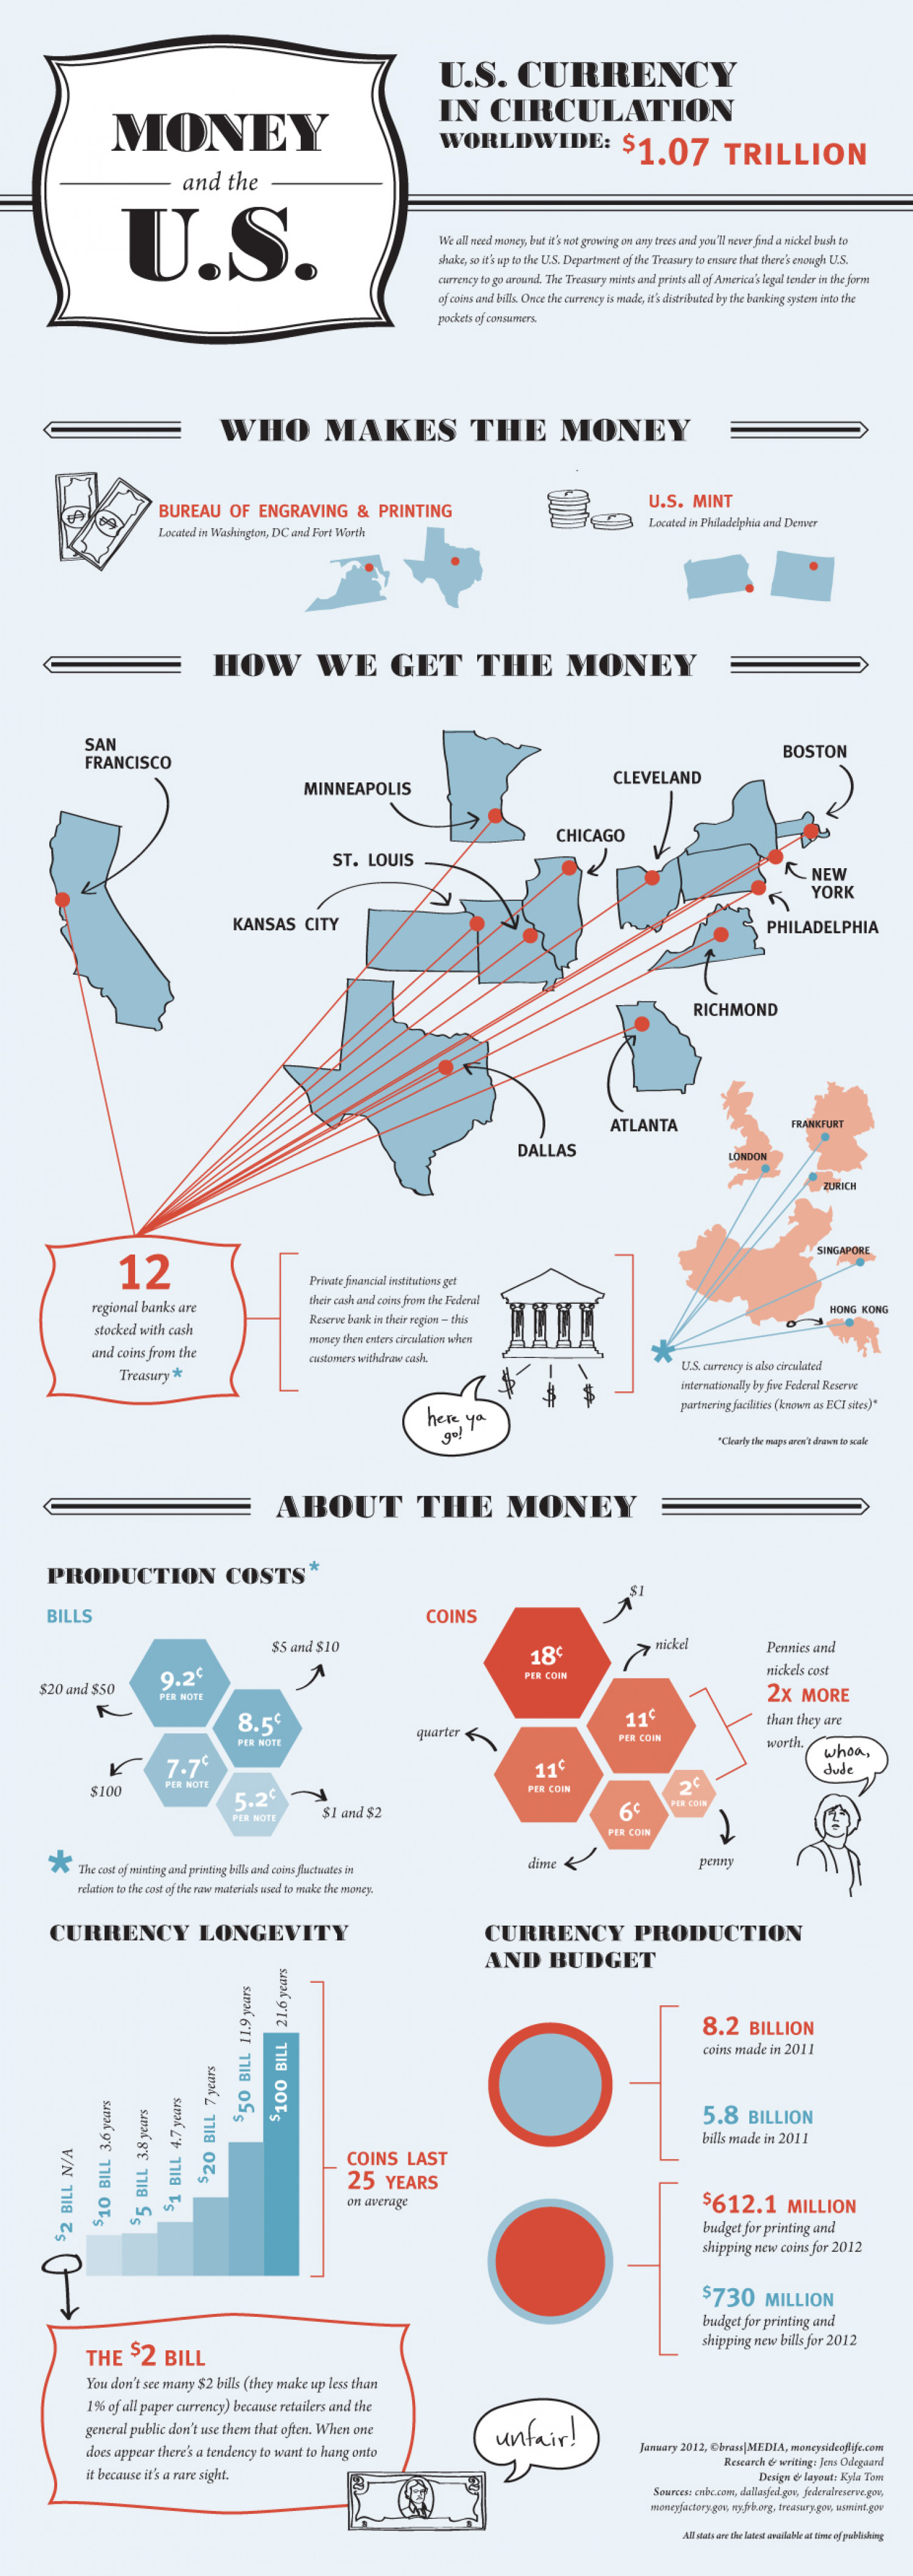 Money and the U.S. Infographic